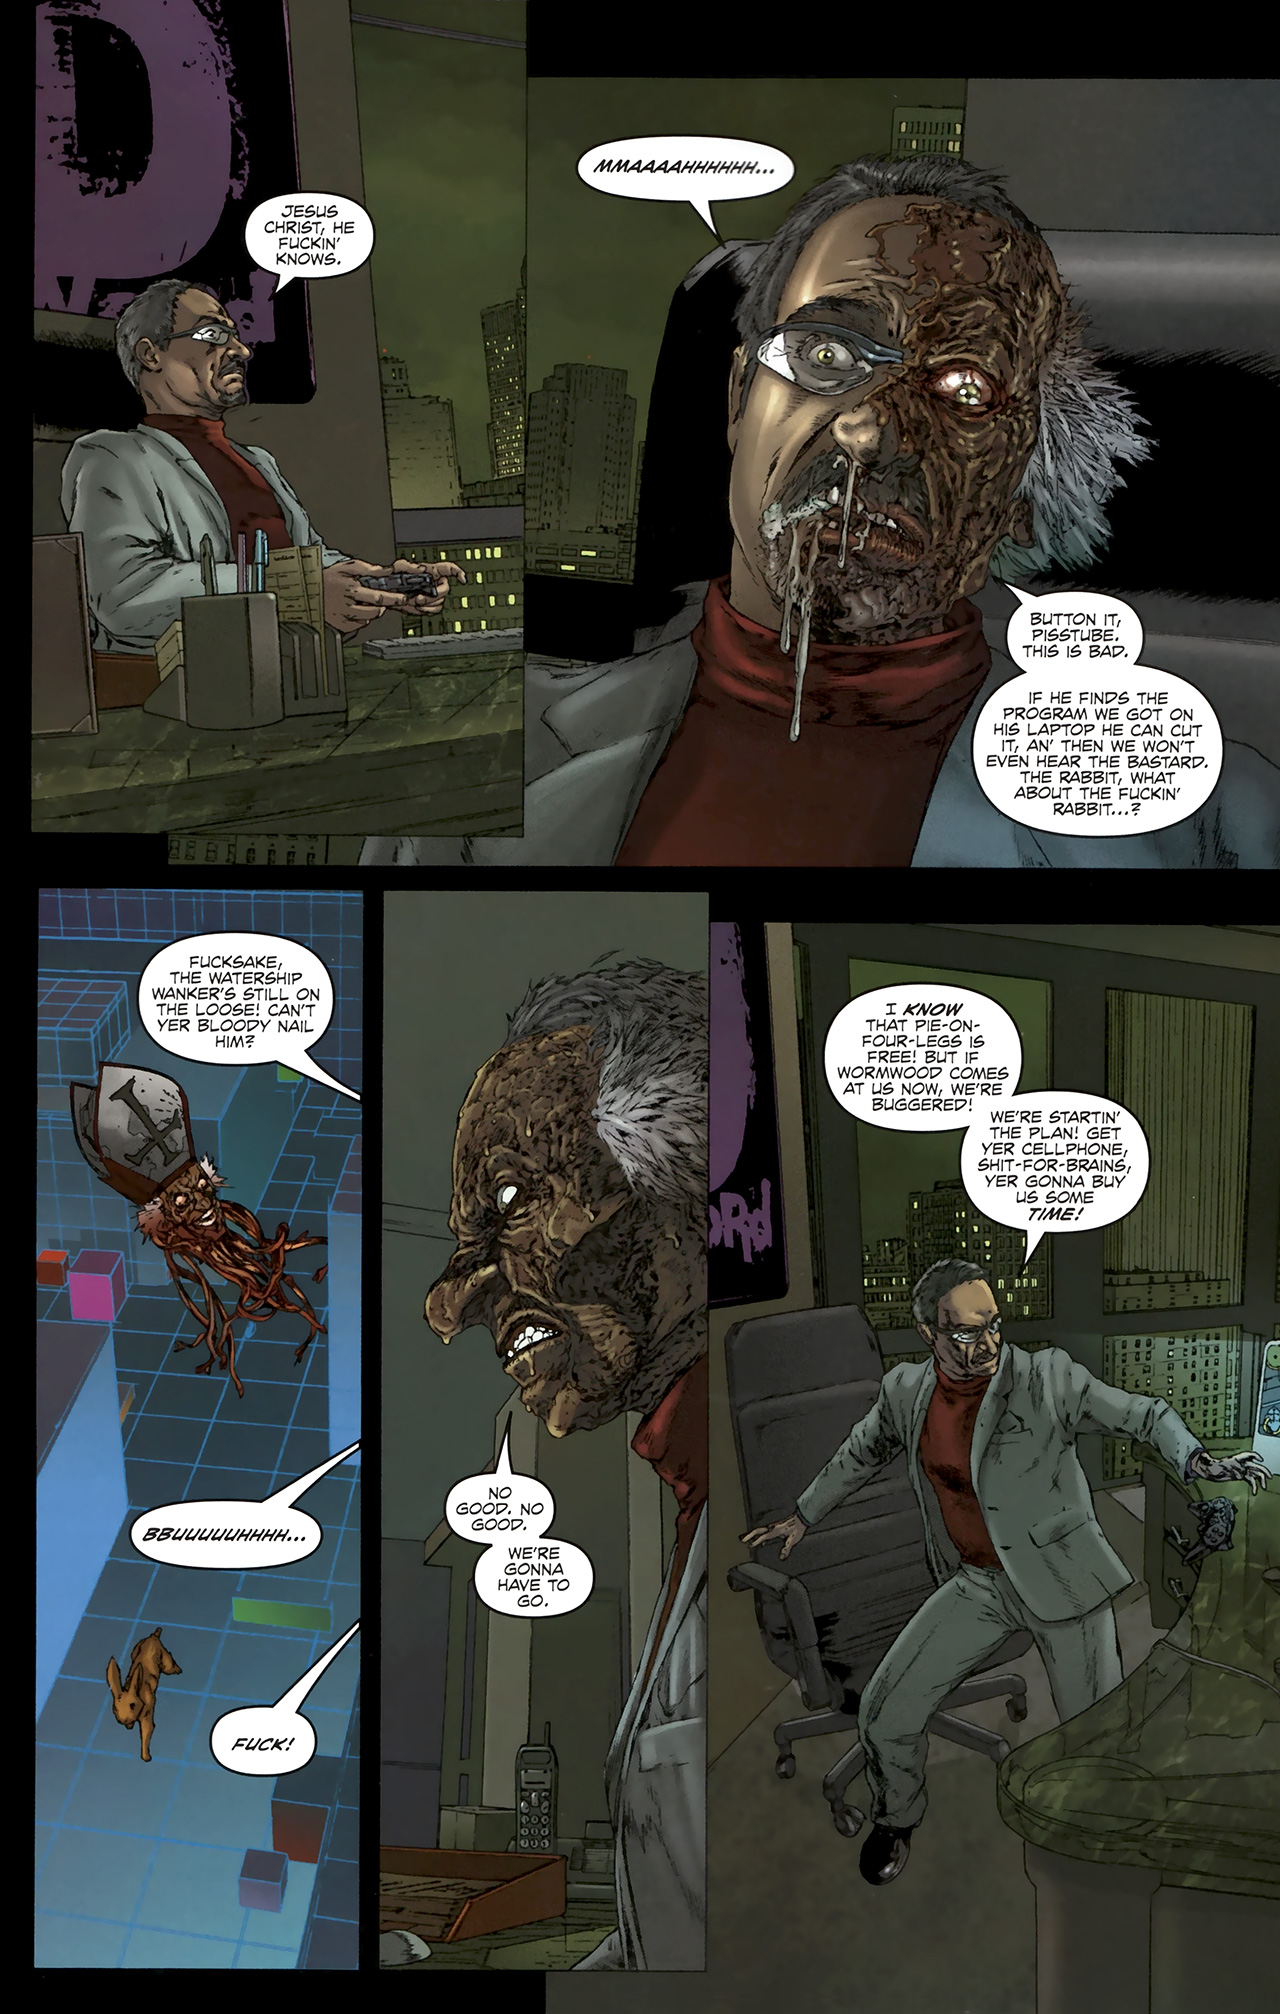 Read online Chronicles of Wormwood: The Last Battle comic -  Issue #5 - 12